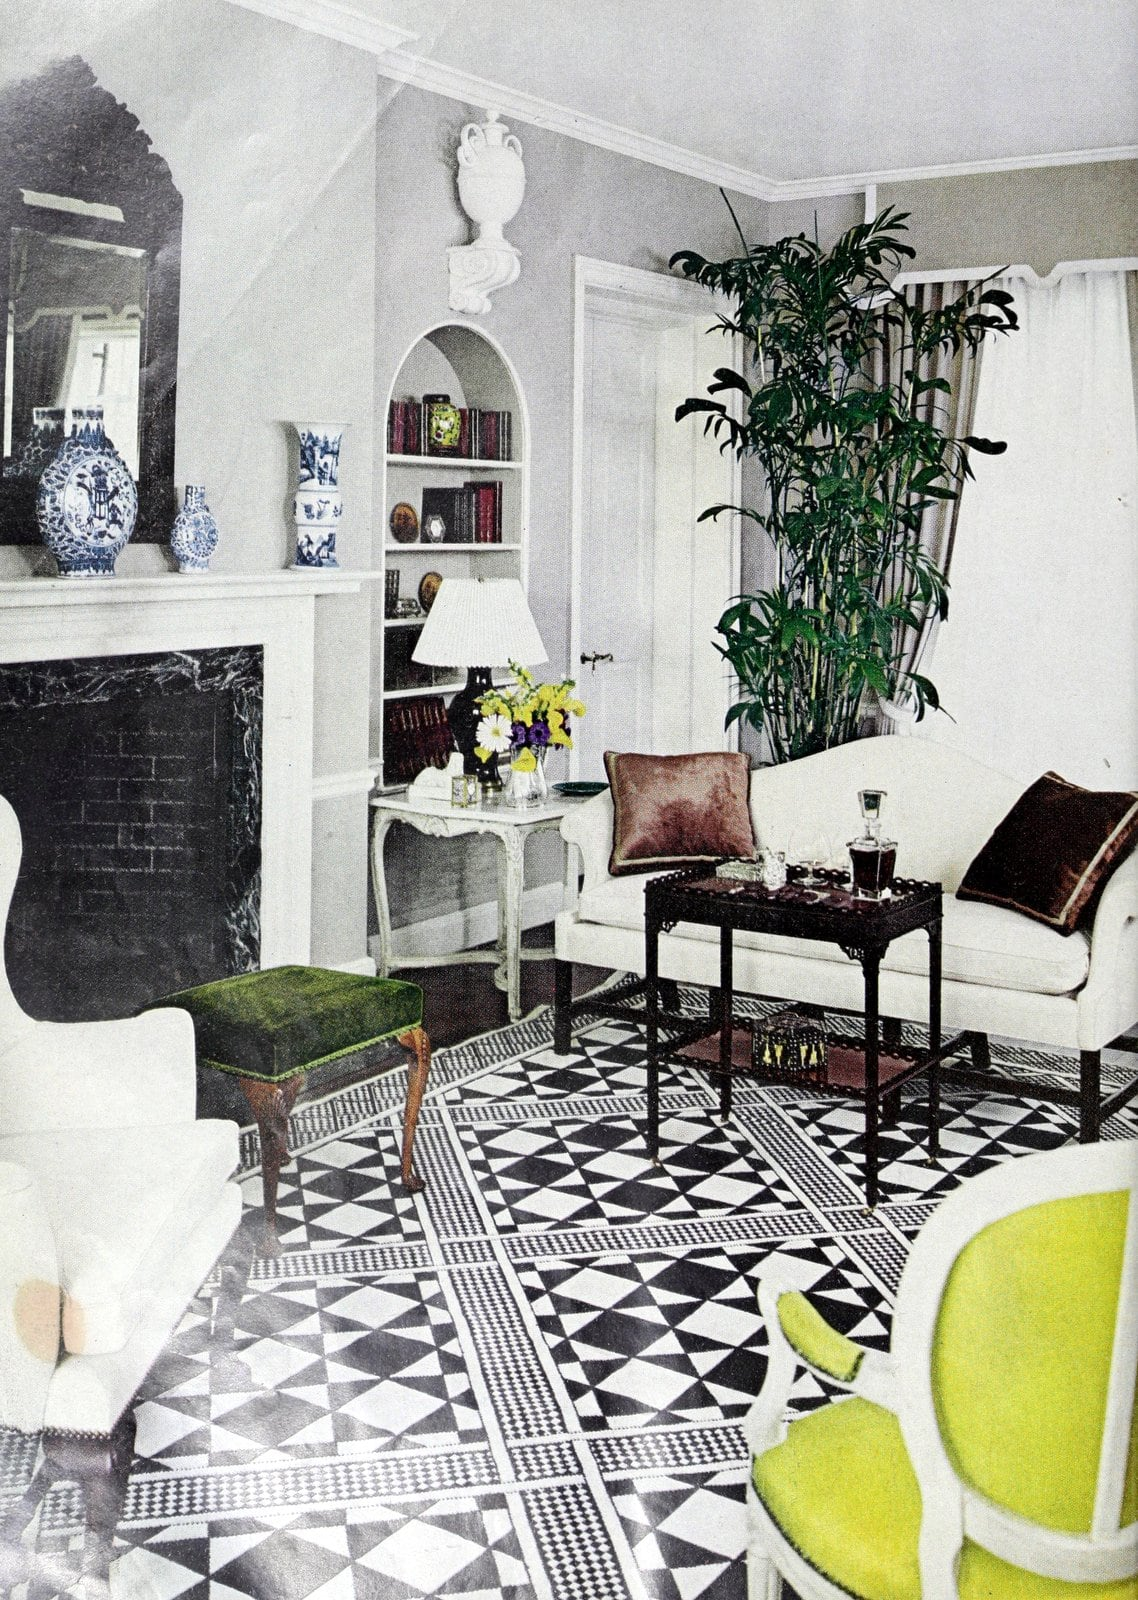 Vintage 1960s living room decor in black and white with green accents